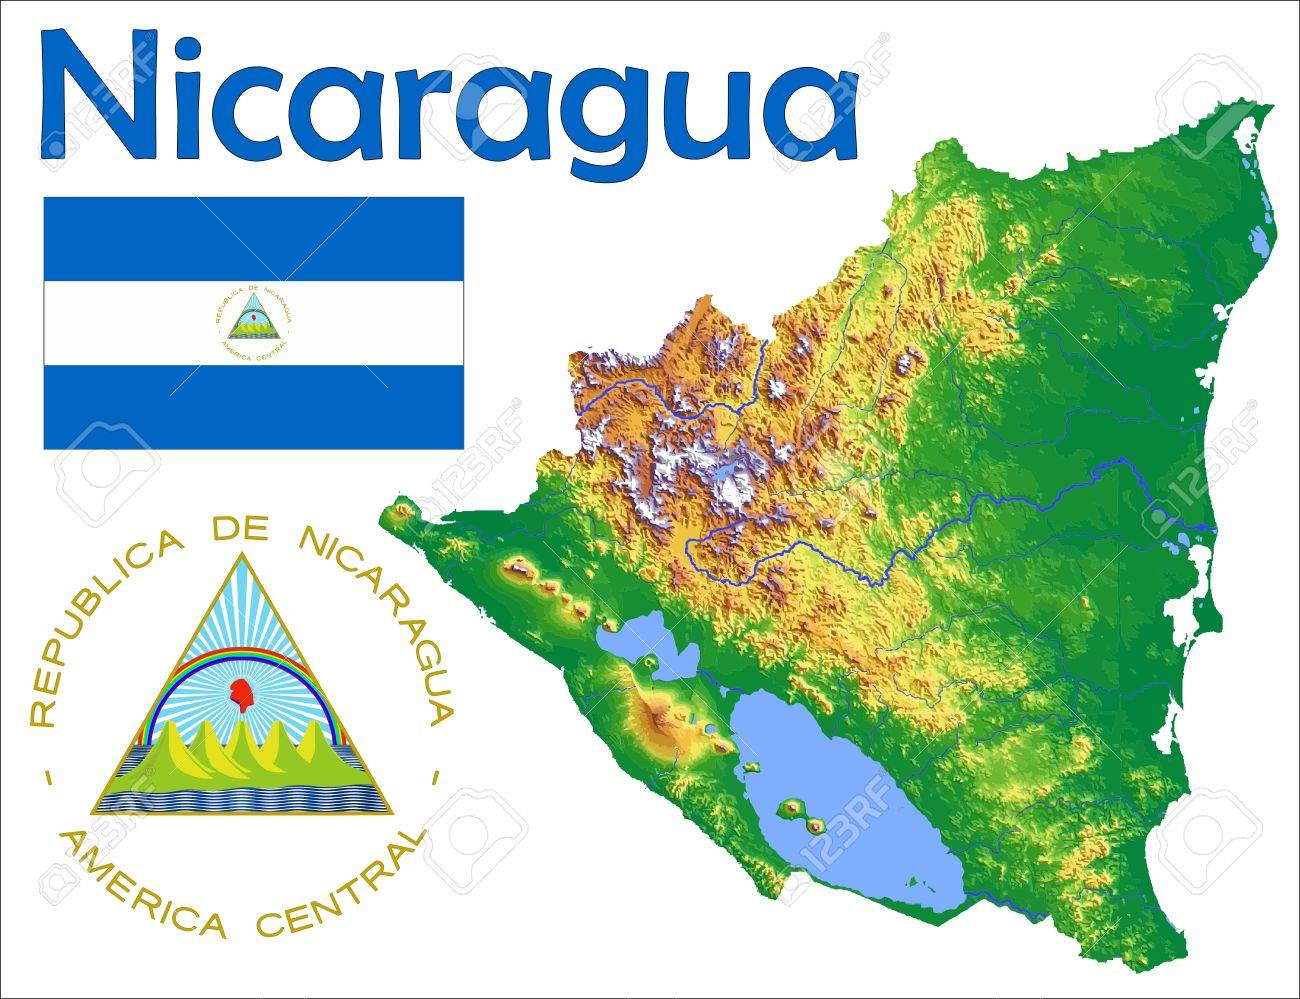 Nicaragua map flag coat royalty free cliparts vectors and stock nicaragua map flag coat stock vector 37748290 gumiabroncs Gallery